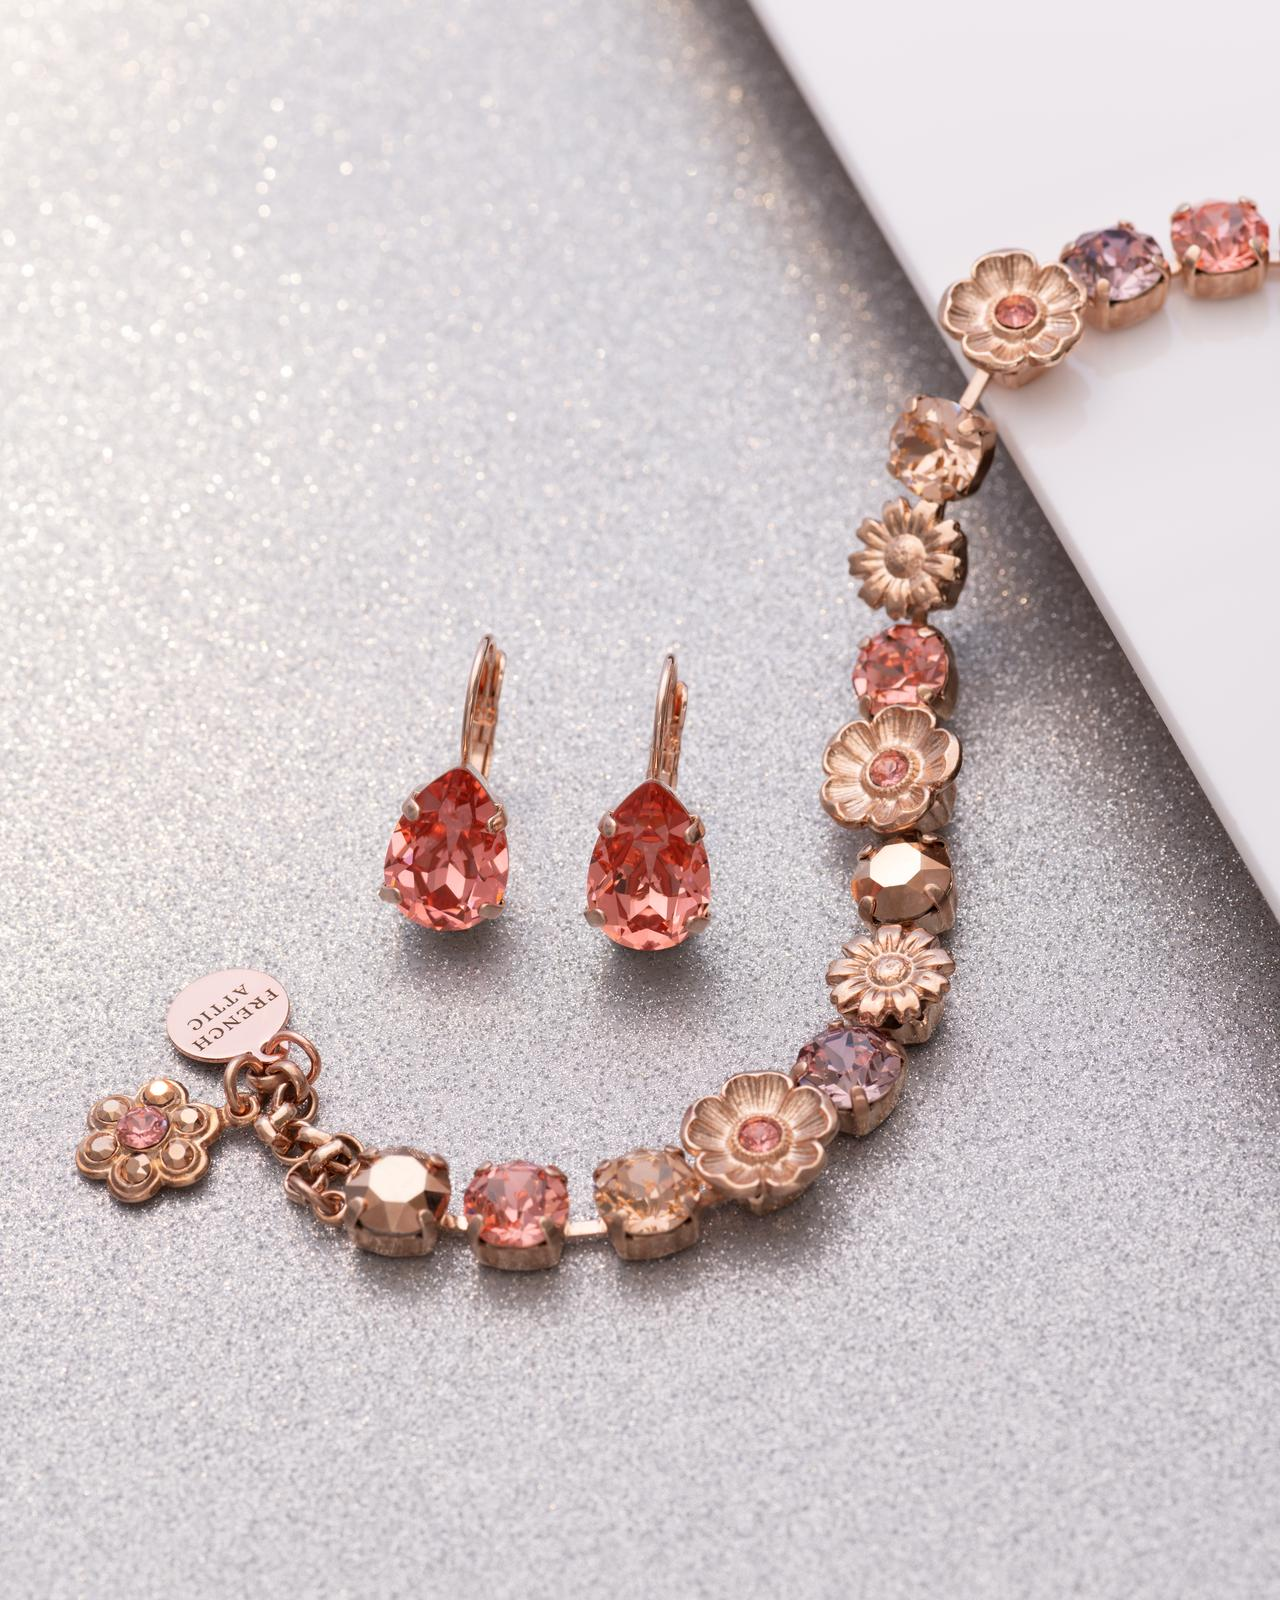 Floral Bracelet and earring